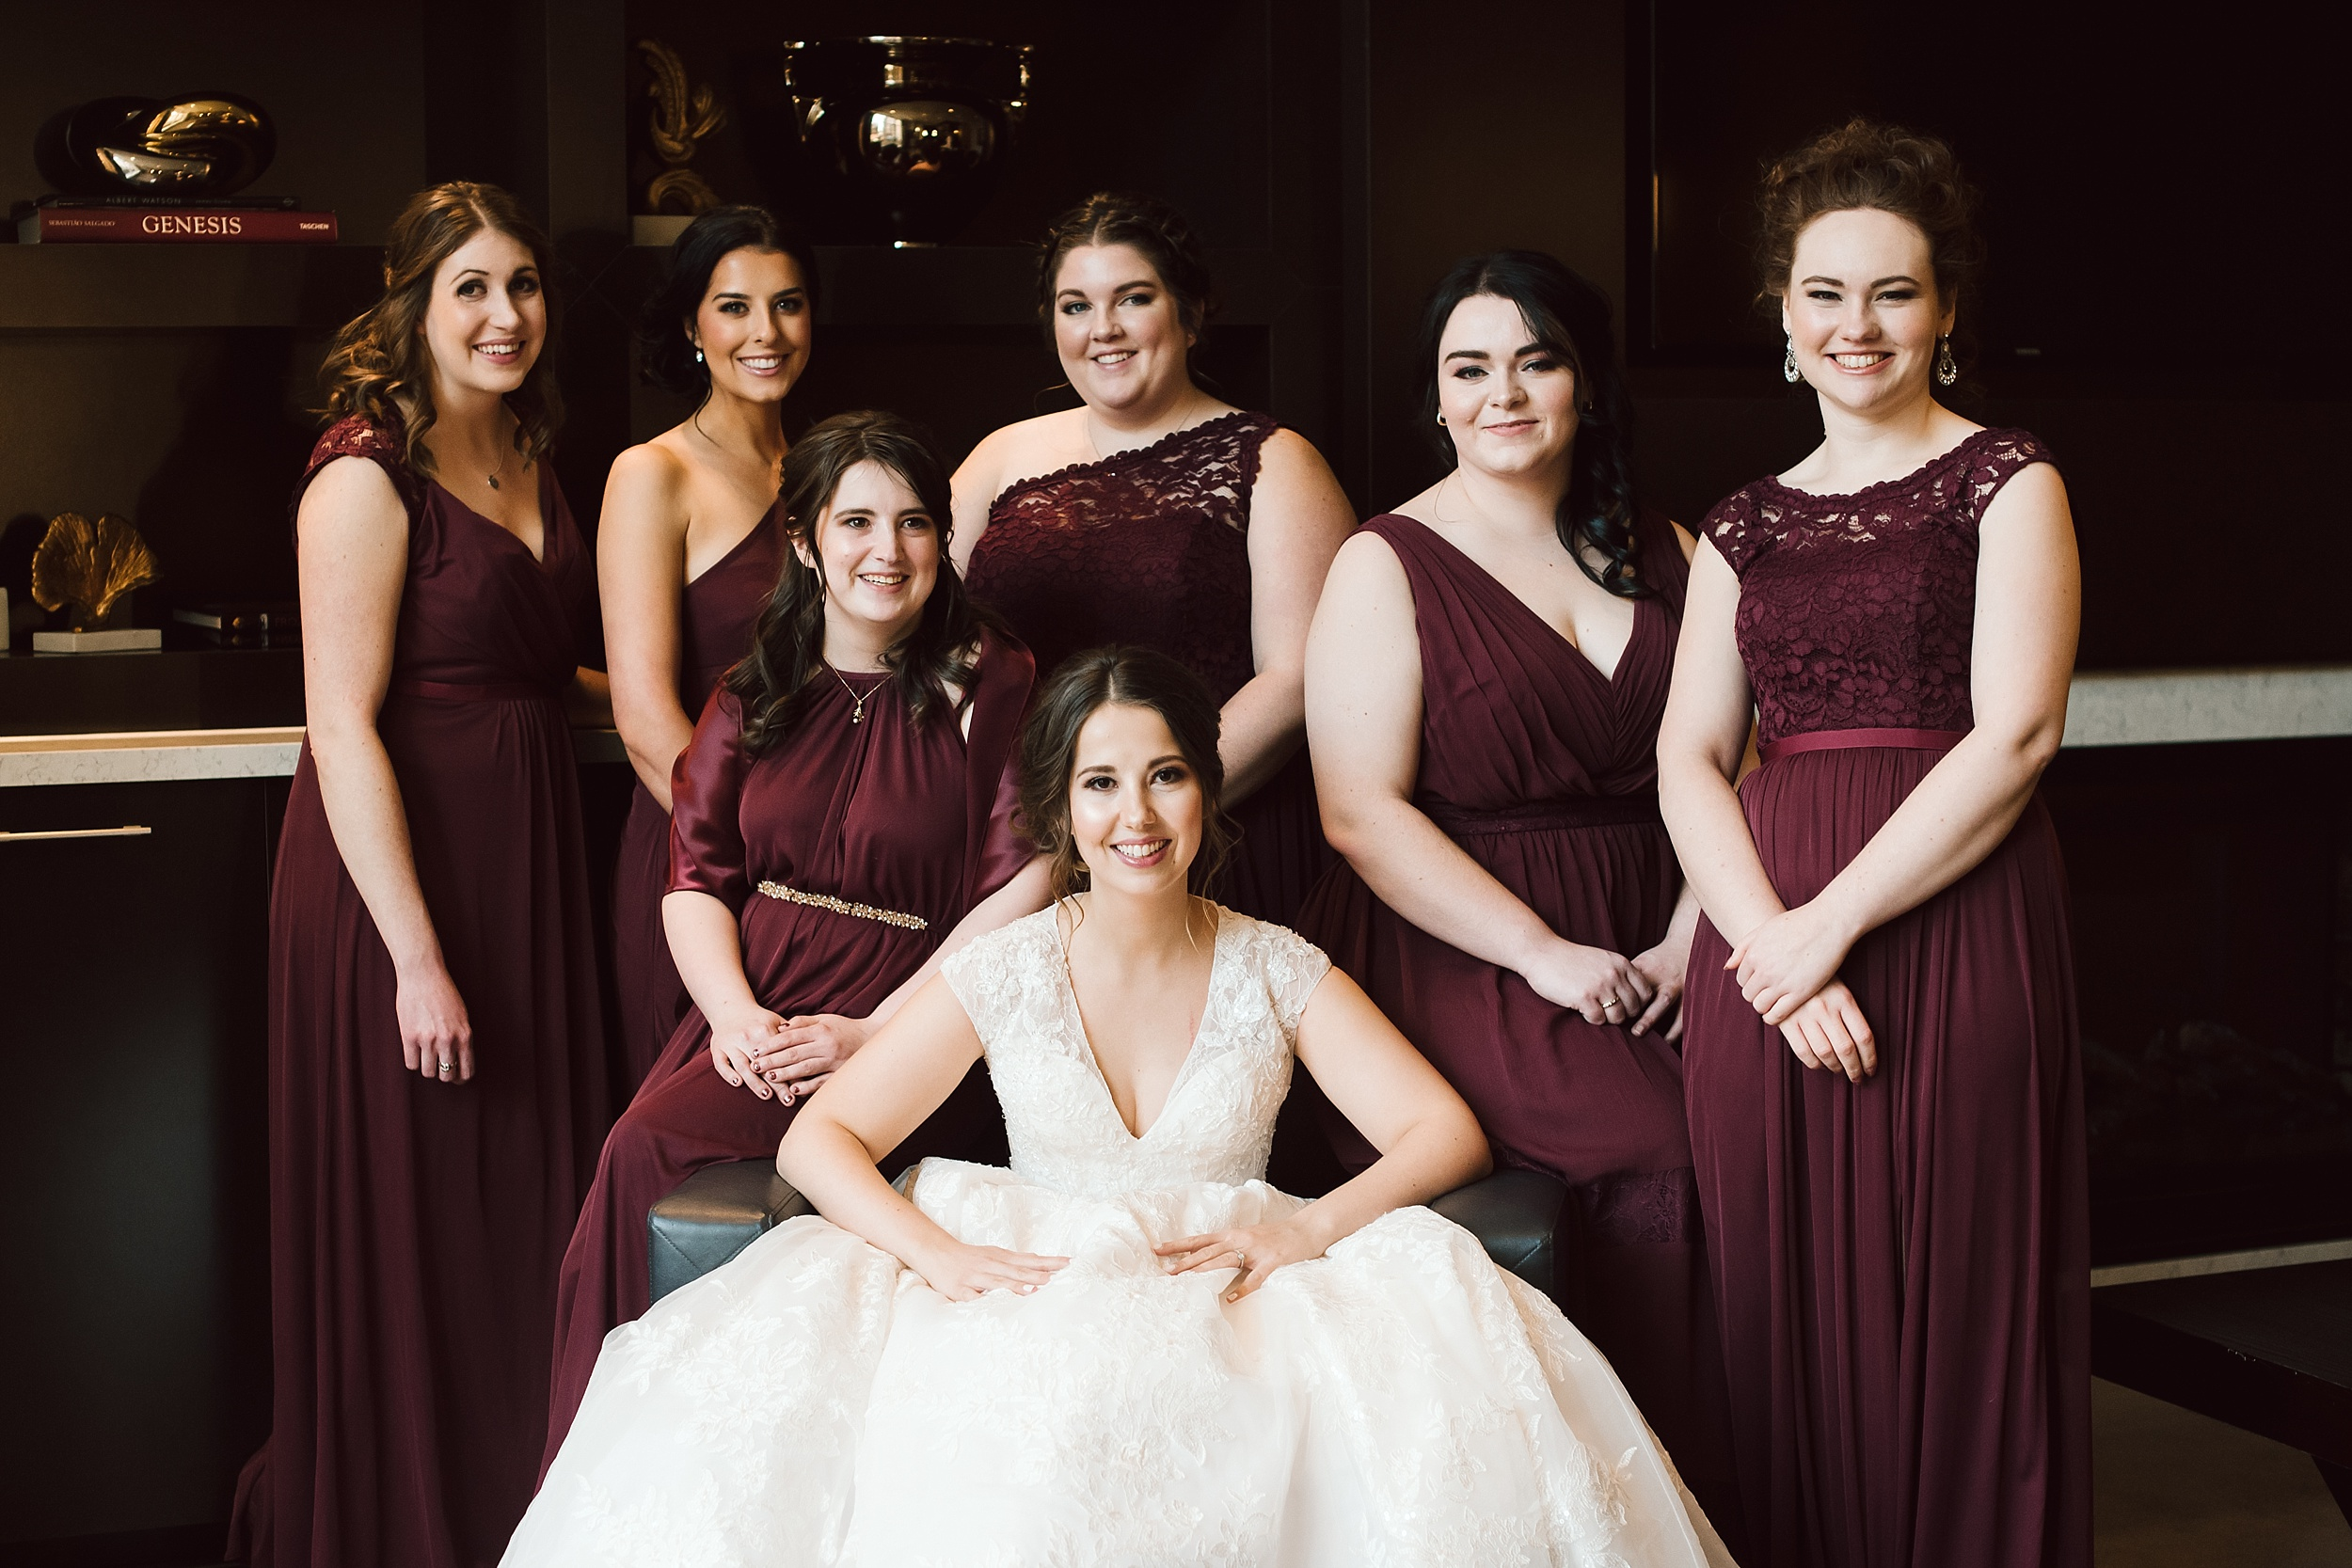 Jam_Factory_Wedding_Toronto_Winter_Wedding_Photographer_0013.jpg